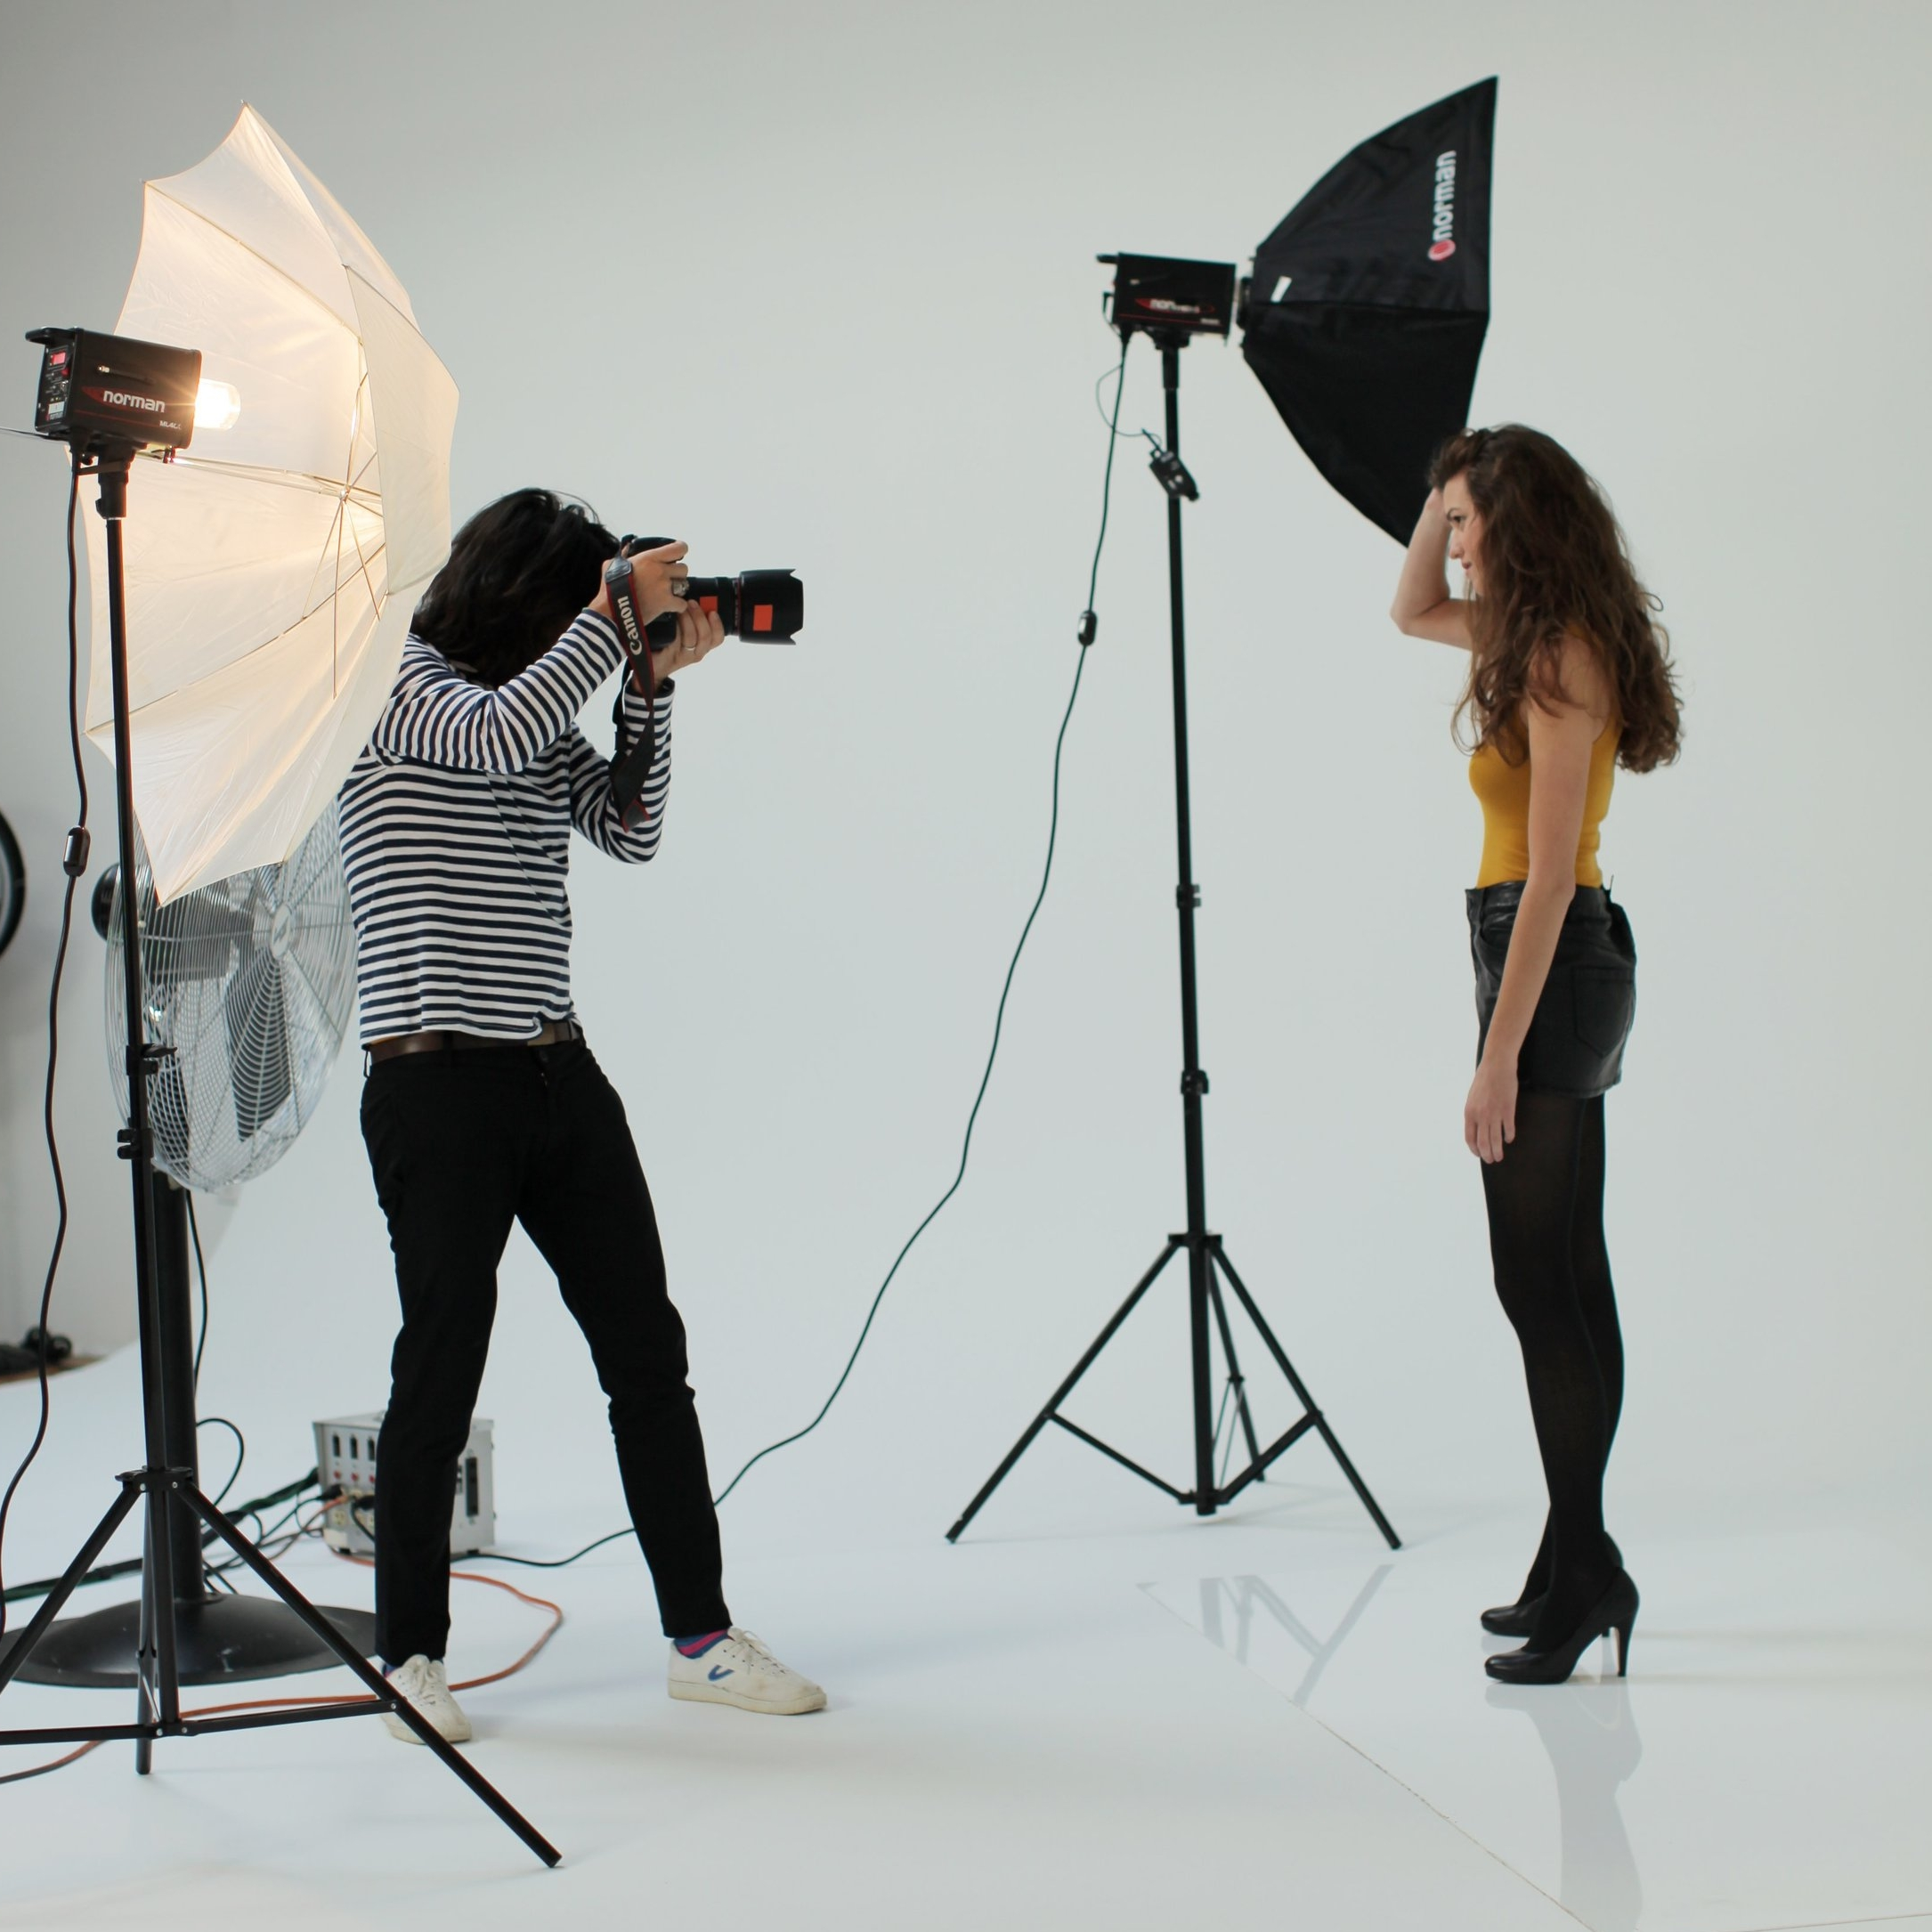 national-level photo shoot - With a celebrity fashion, beauty, and commercial photographer, including 50-100 images with full printing & posting rights